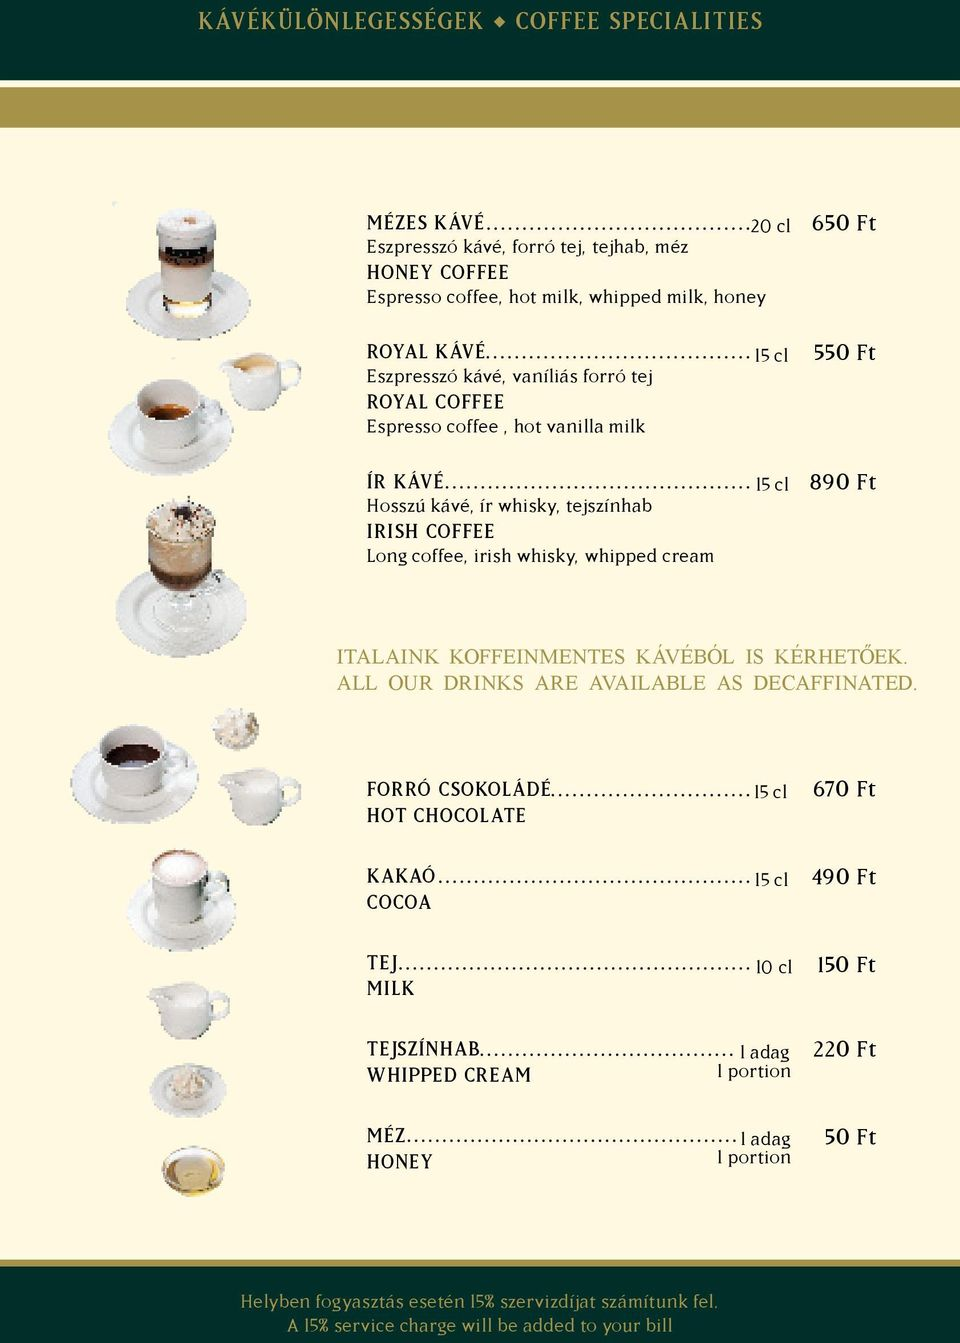 coffee, irish whisky, whipped cream 15 cl 15 cl 550 Ft 890 Ft ITALAINK KOFFEINMENTES KÁVÉBÓL IS KÉRHETŐEK. ALL OUR DRINKS ARE AVAILABLE AS DECAFFINATED.